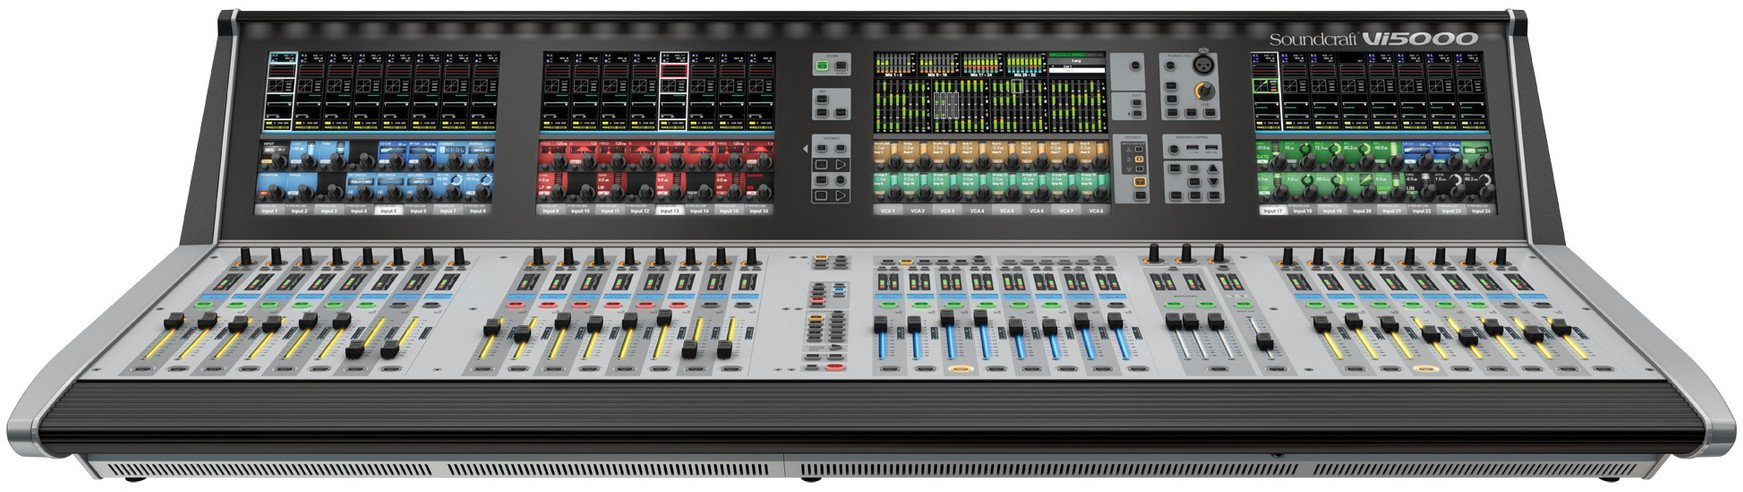 128 Input Digital Mixing Console with 24 Faders